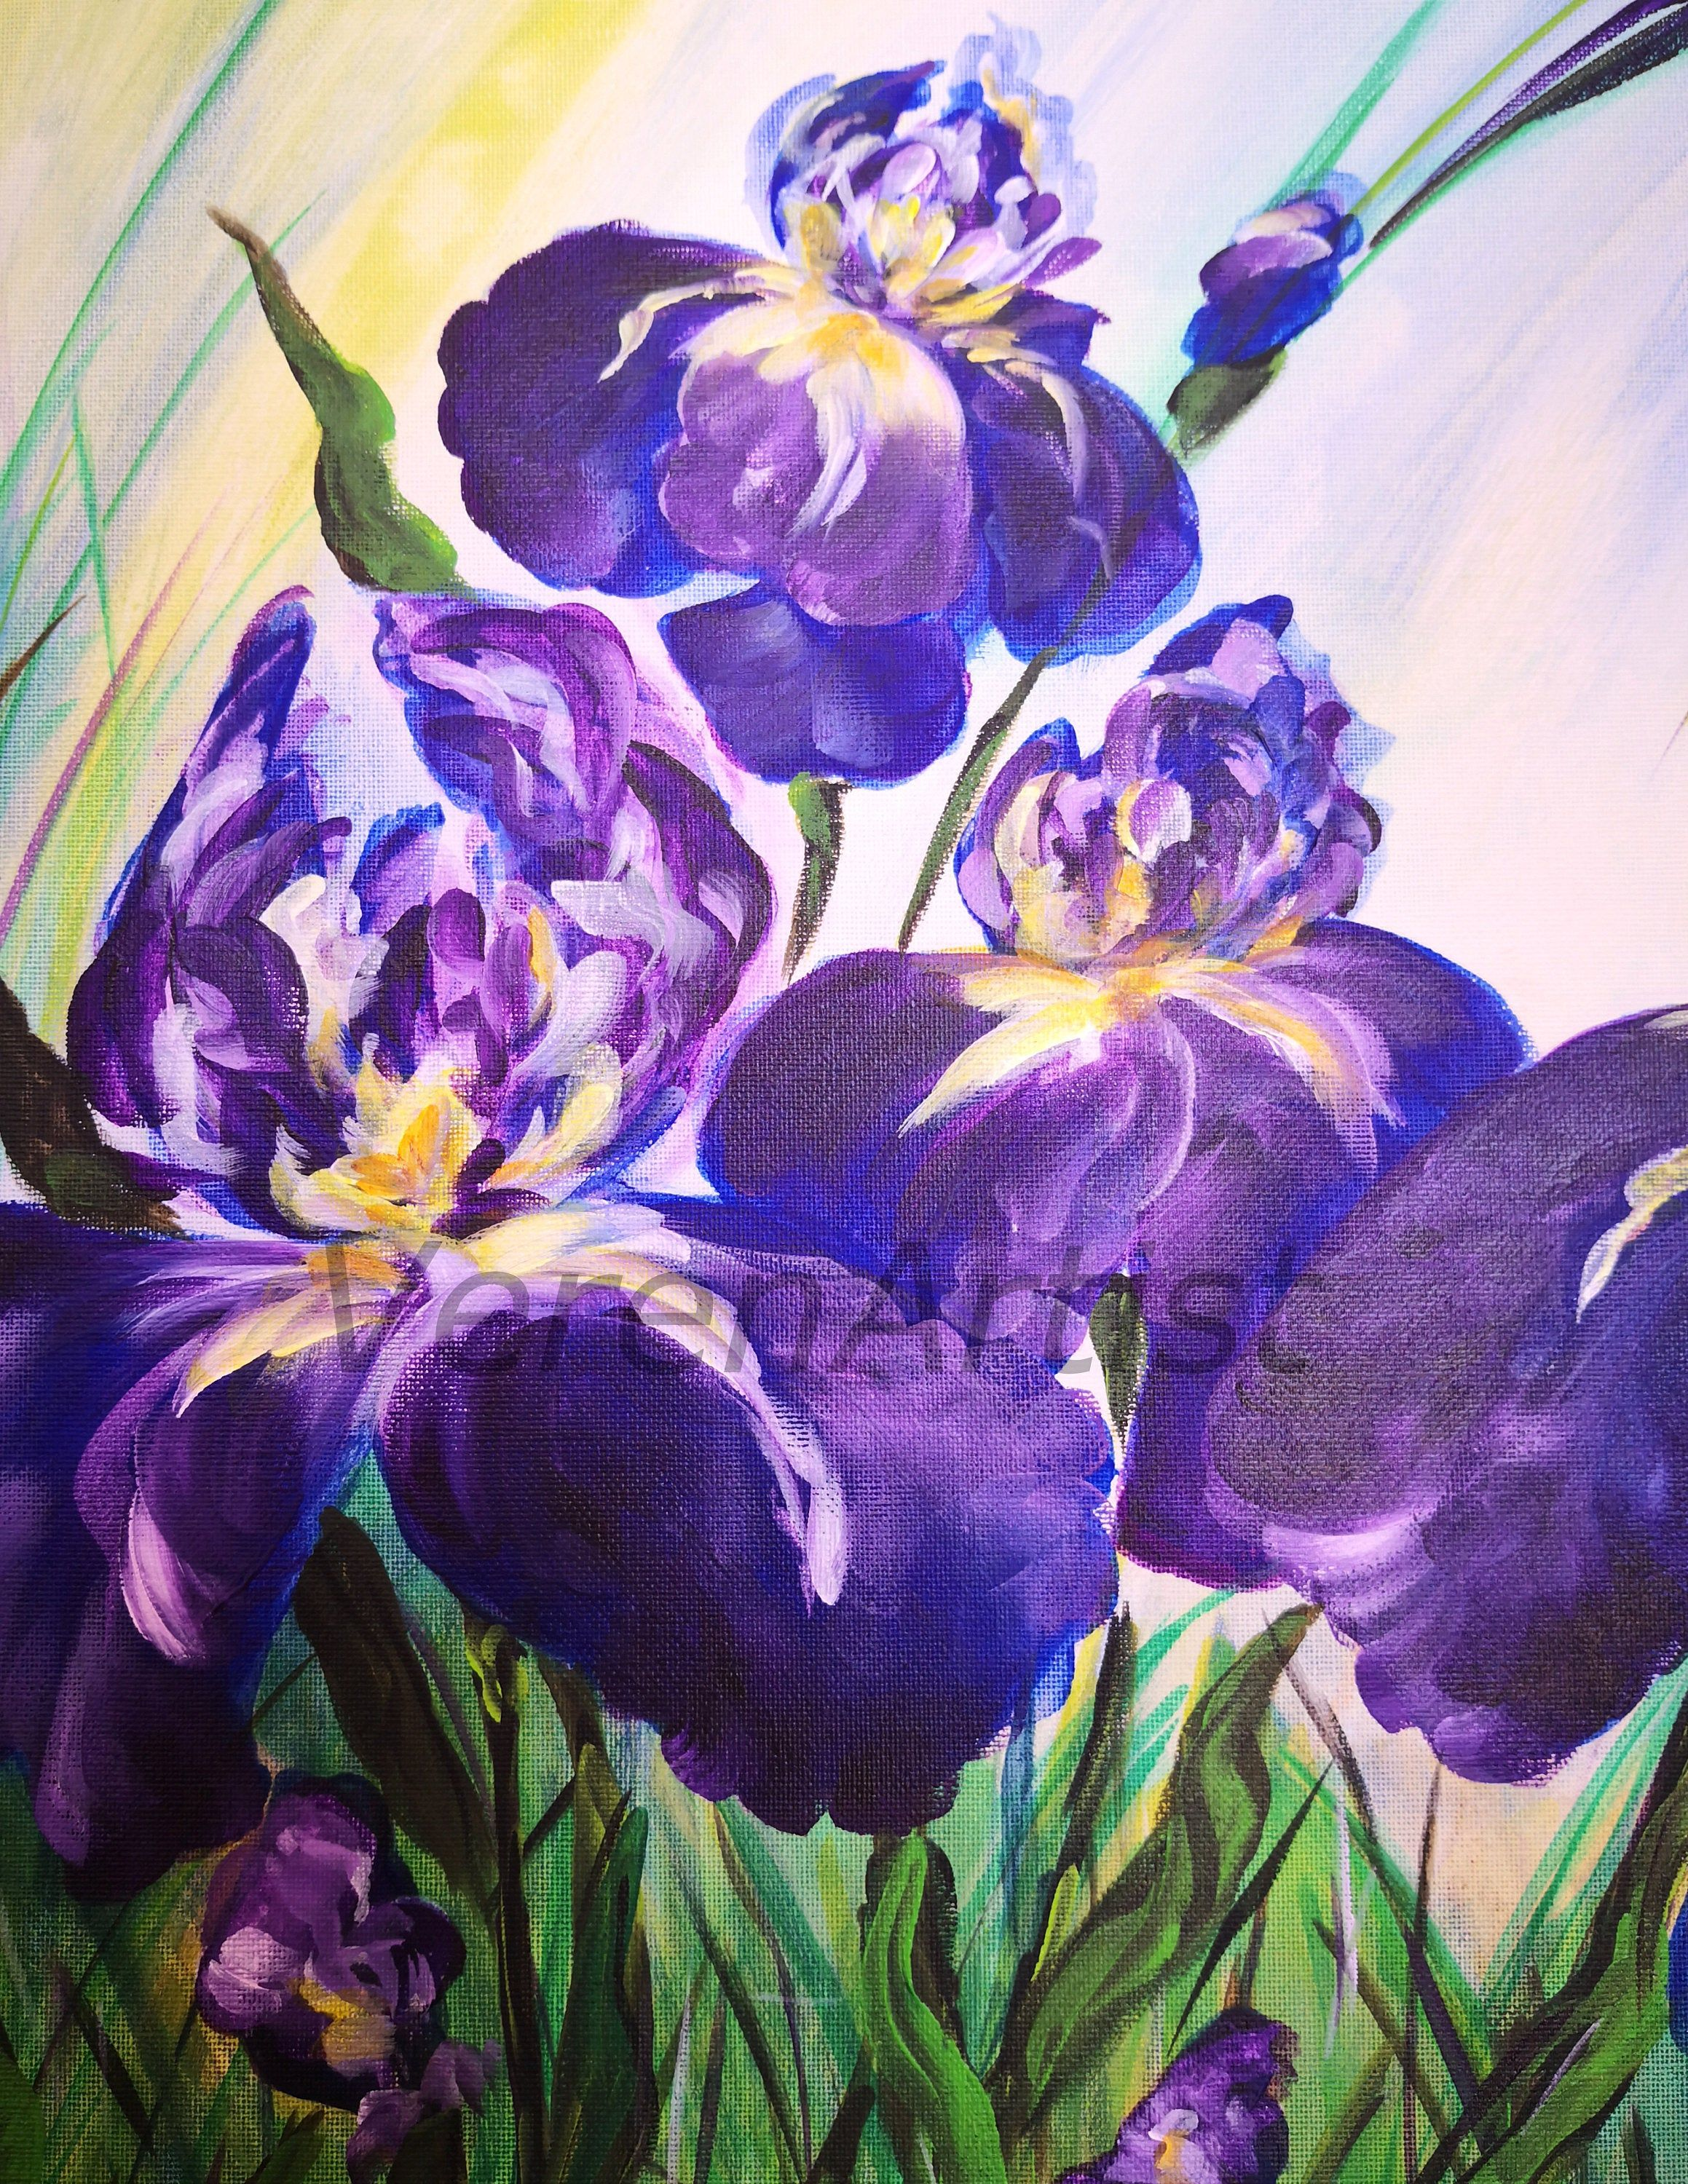 Painting On Canvas Irises Blue Purple Flowers Wildflowers Acrylic Floral Bouquet Nature Abstract Original Painting Acrylbilder Home Decor In 2020 Blue And Purple Flowers Iris Painting Purple Flowers